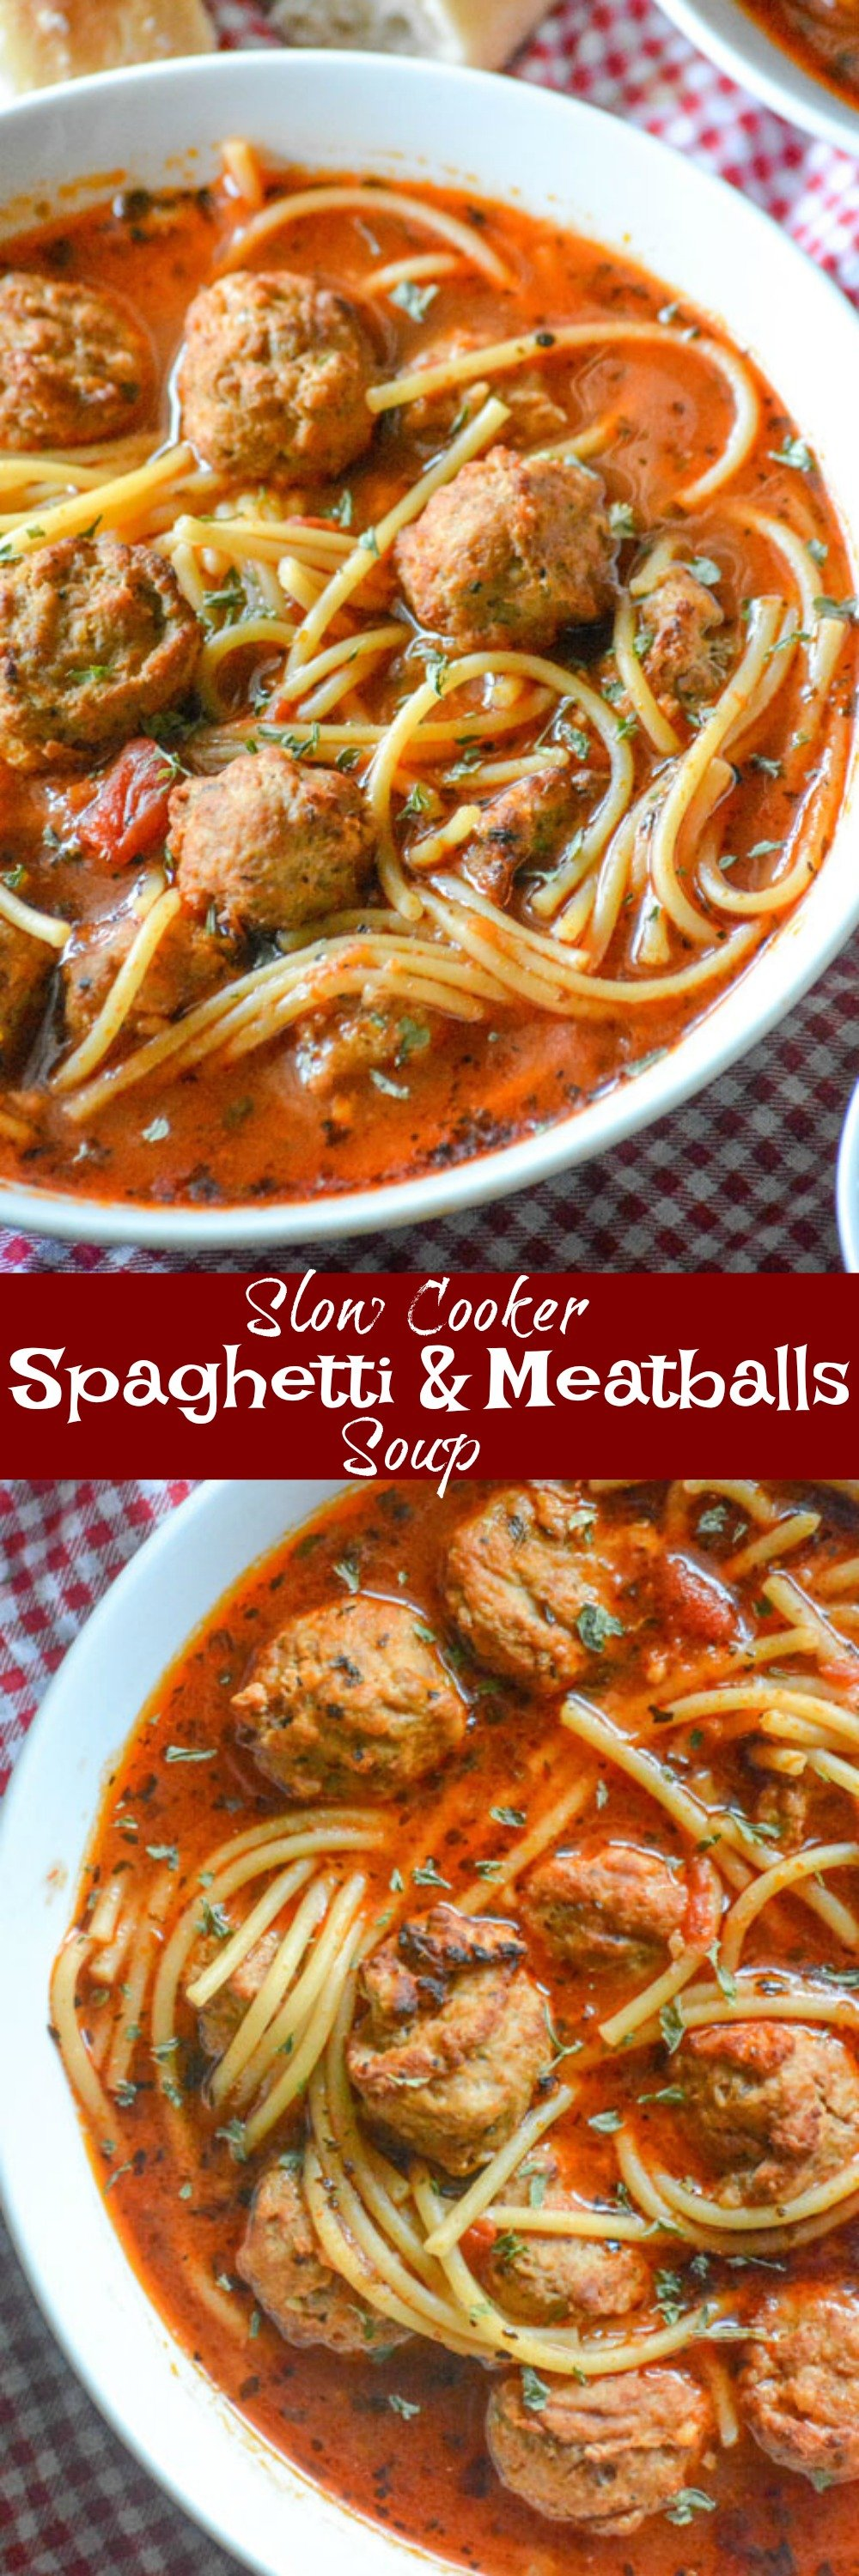 This Slow Cooker Spaghetti & Meatballs Soup turns a simple family favorite into savory Italian American comfort soup. Serve it with crusty bread and extra Parmesan for an easy dinner any night of the week!